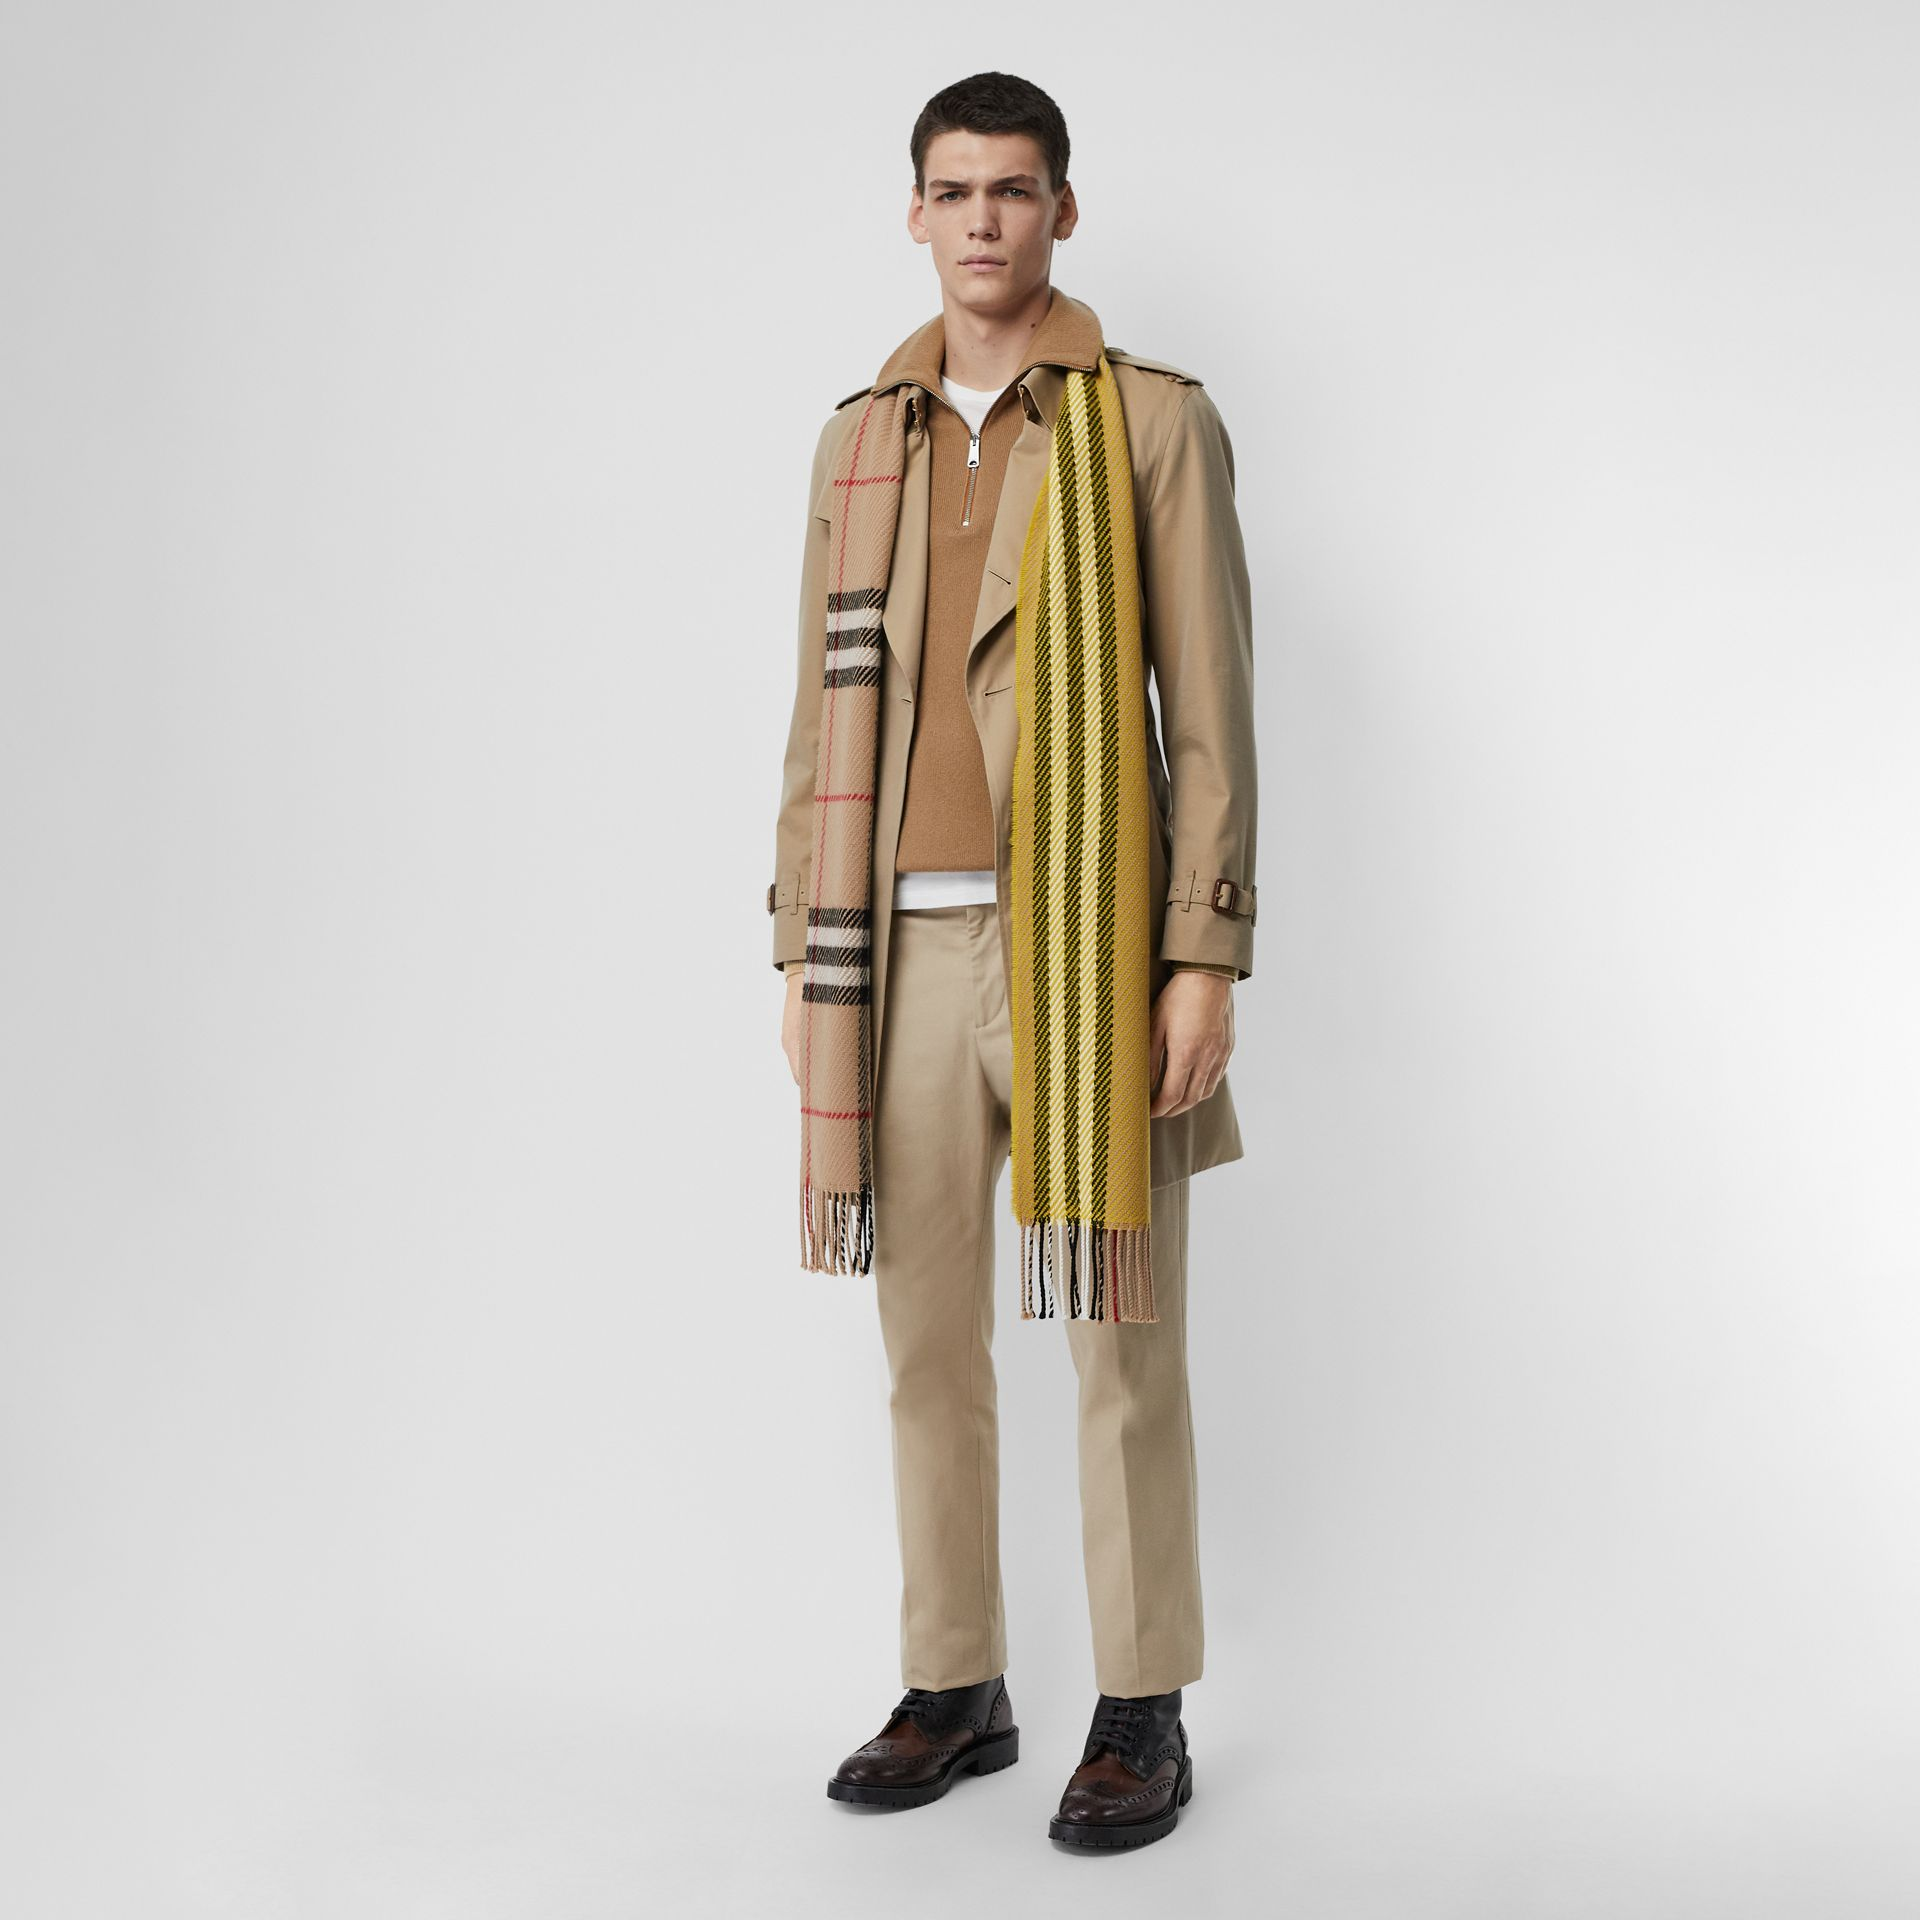 Rib Knit Cashmere Half-zip Sweater in Camel - Men | Burberry - gallery image 4